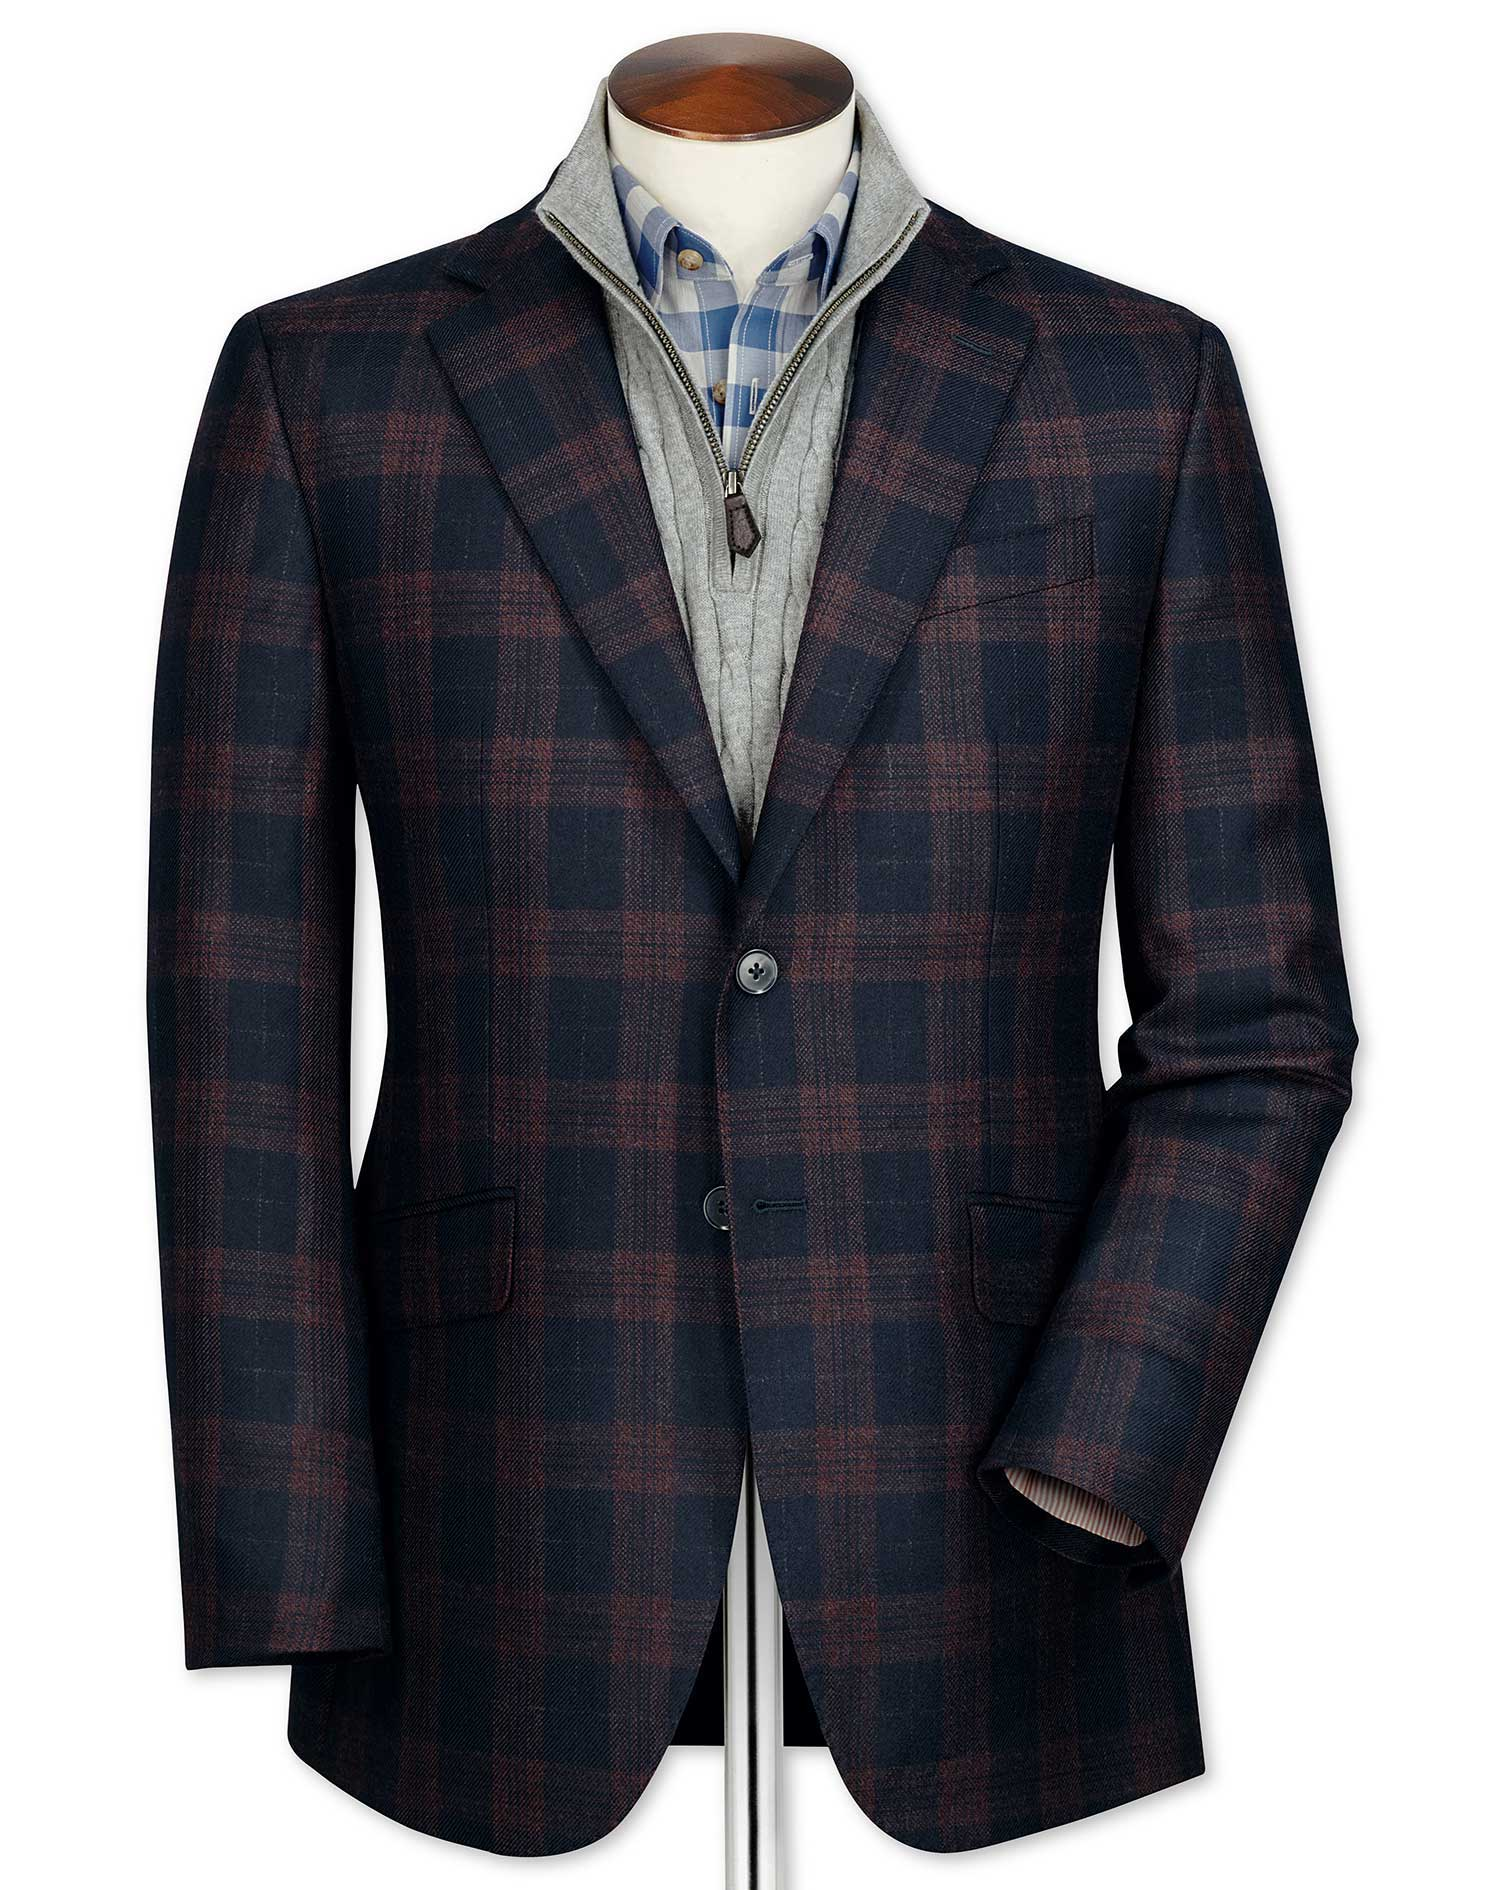 Slim Fit Navy Checkered Lambswool Wool Jacket Size 38 Long by Charles Tyrwhitt